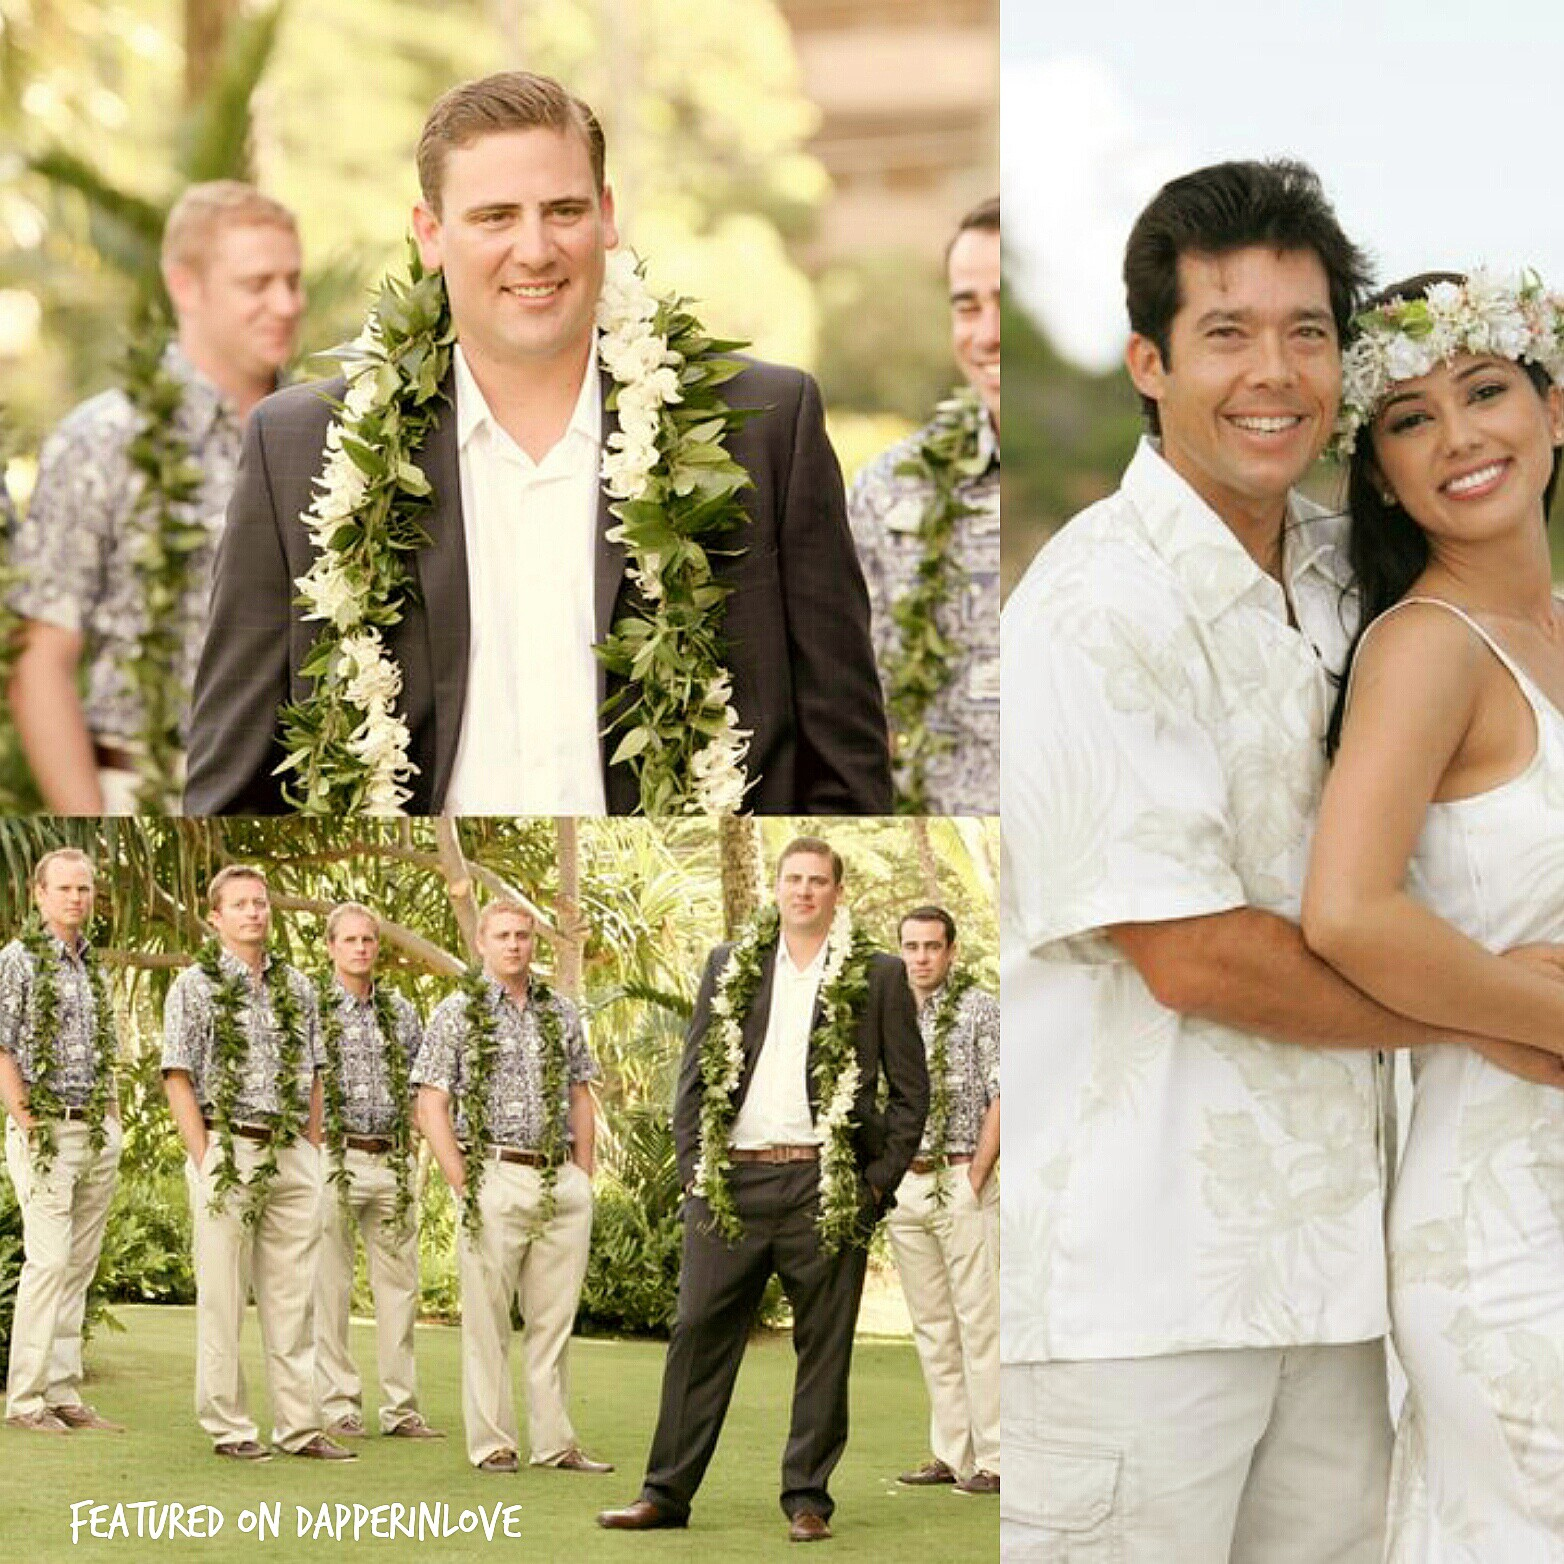 e8a235e9e342 Hawaiian shirts and leis are perfect for grooms who want to set the mood  for a fun, memorable beach wedding! {Sources}